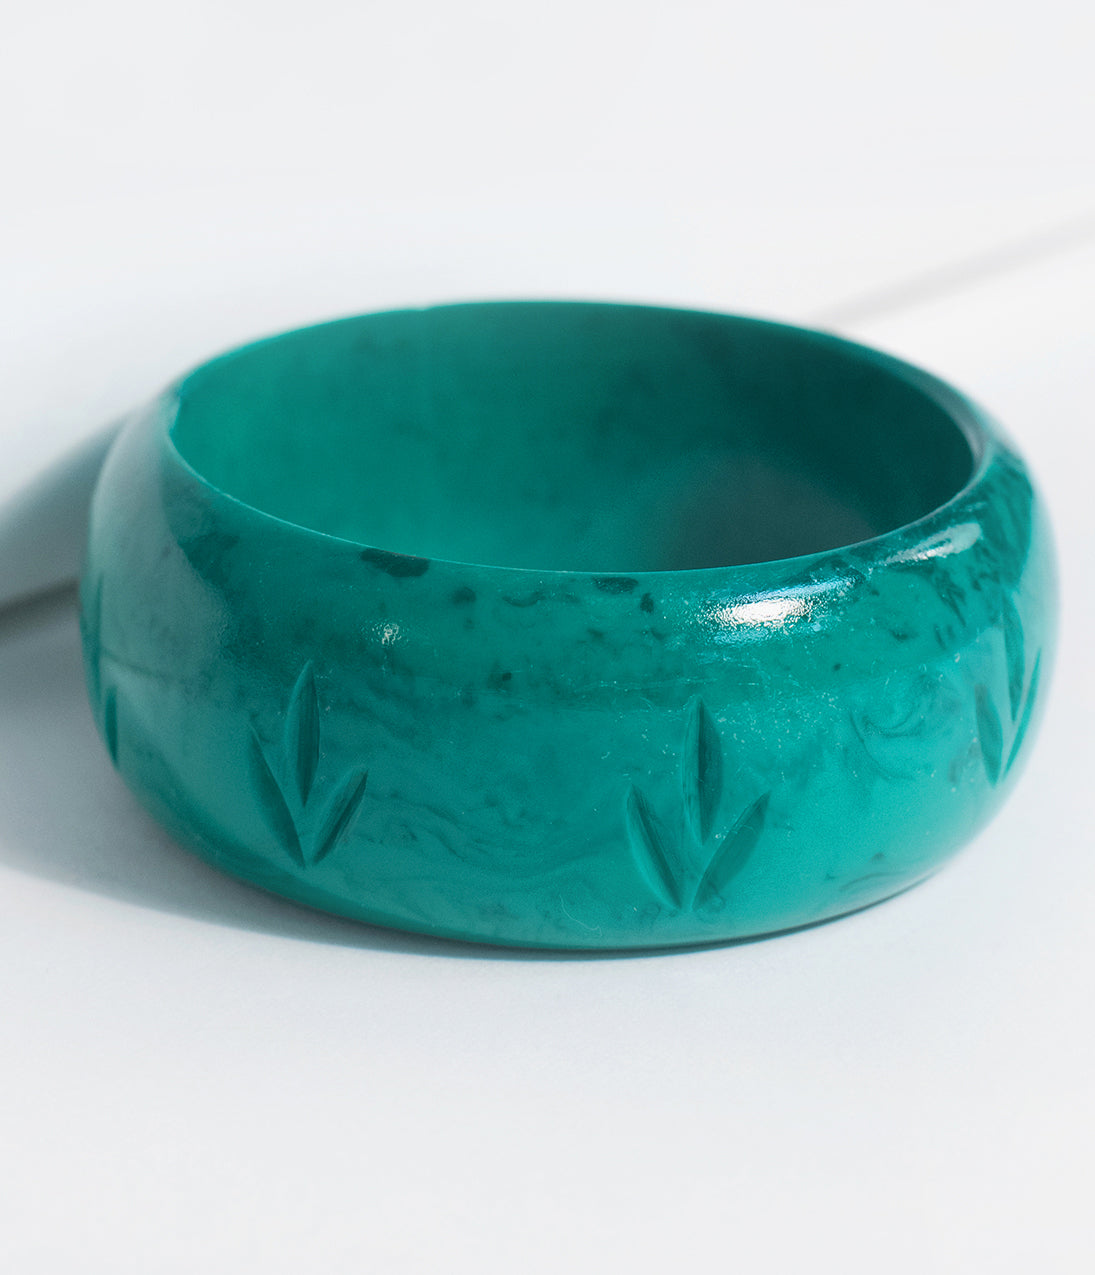 Vintage Style Jewelry, Retro Jewelry Green Malachite Resin Carved Wide Bangle $16.00 AT vintagedancer.com